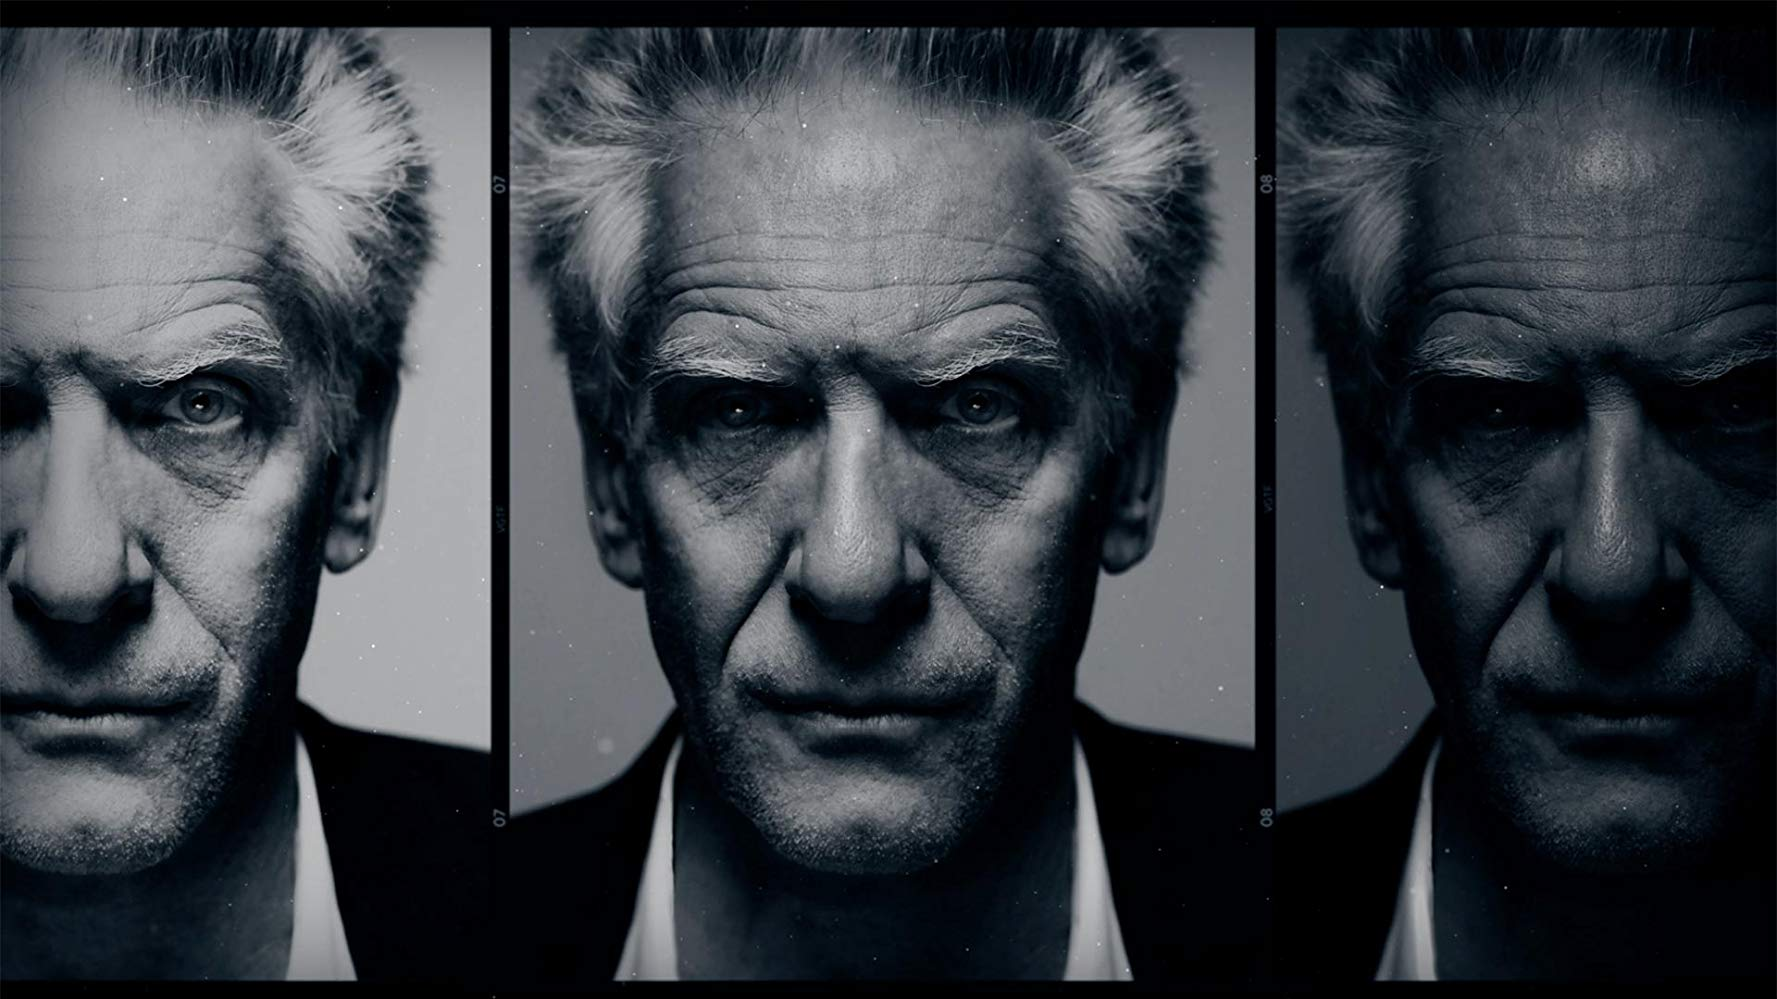 Photo de David Cronenberg. #davidcronenberg #cinéma #movie #film #sciencefiction